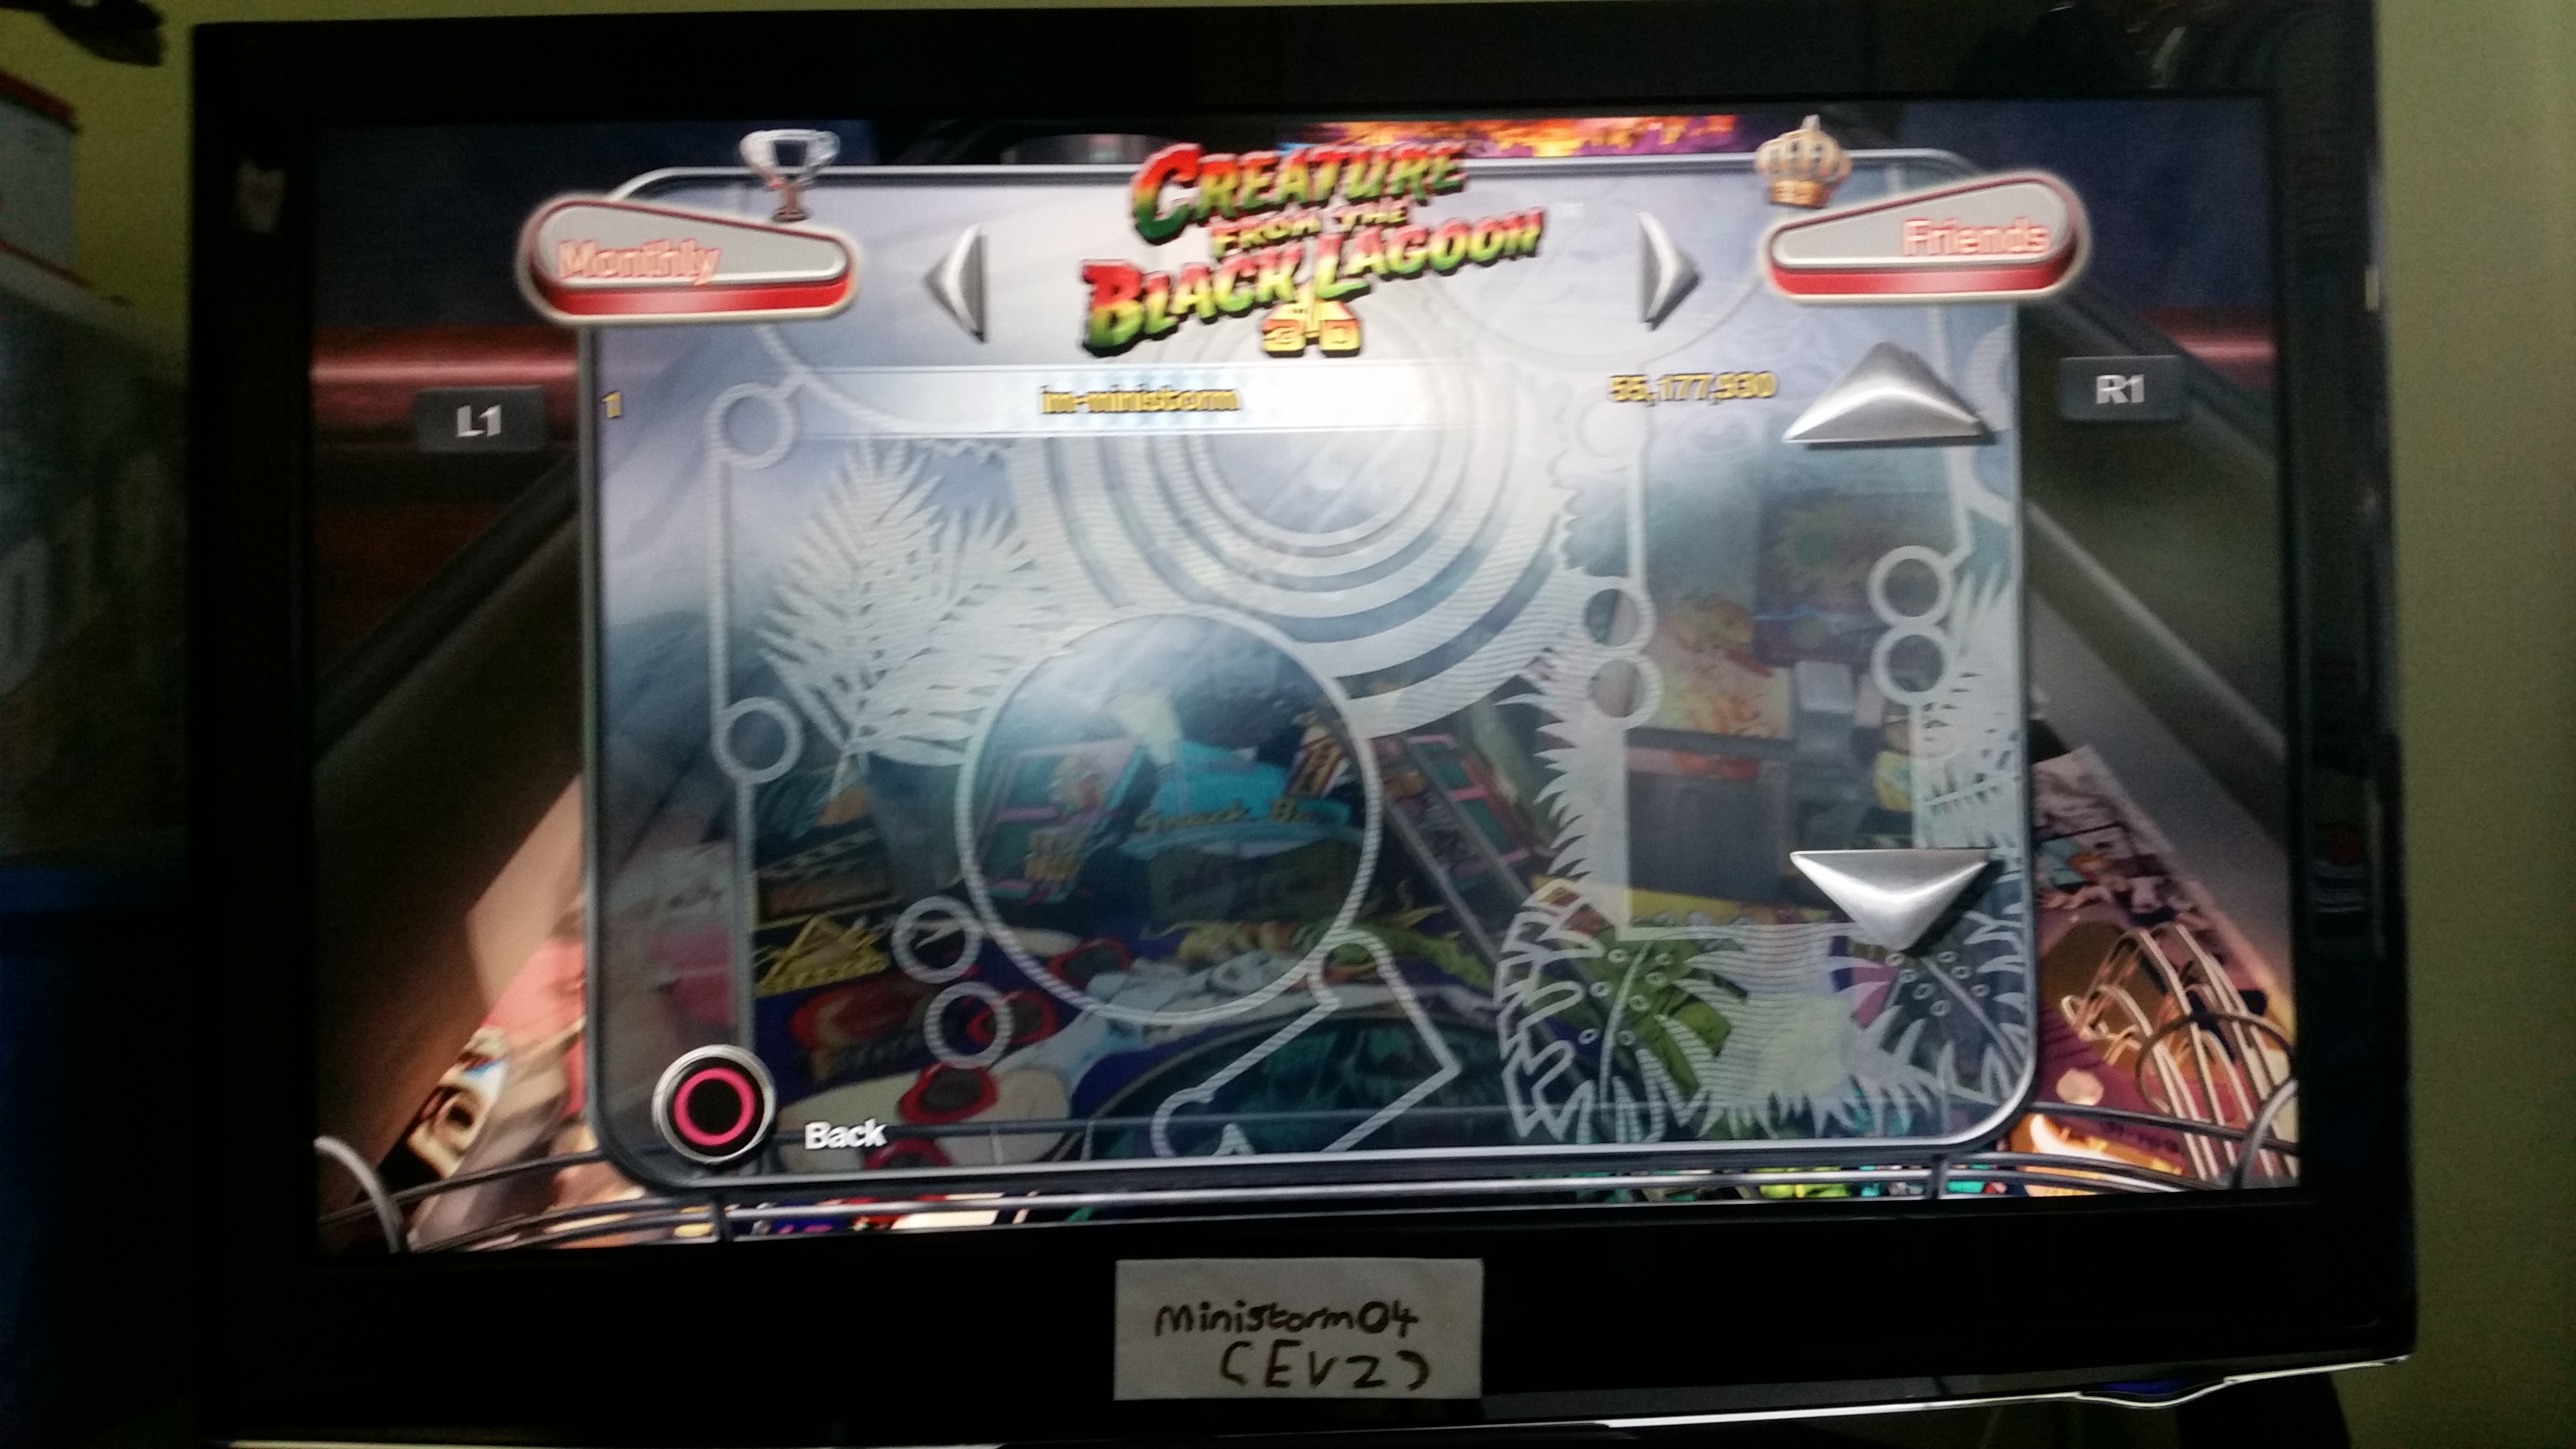 Pinball Arcade: Creature From the Black Lagoon 55,177,930 points